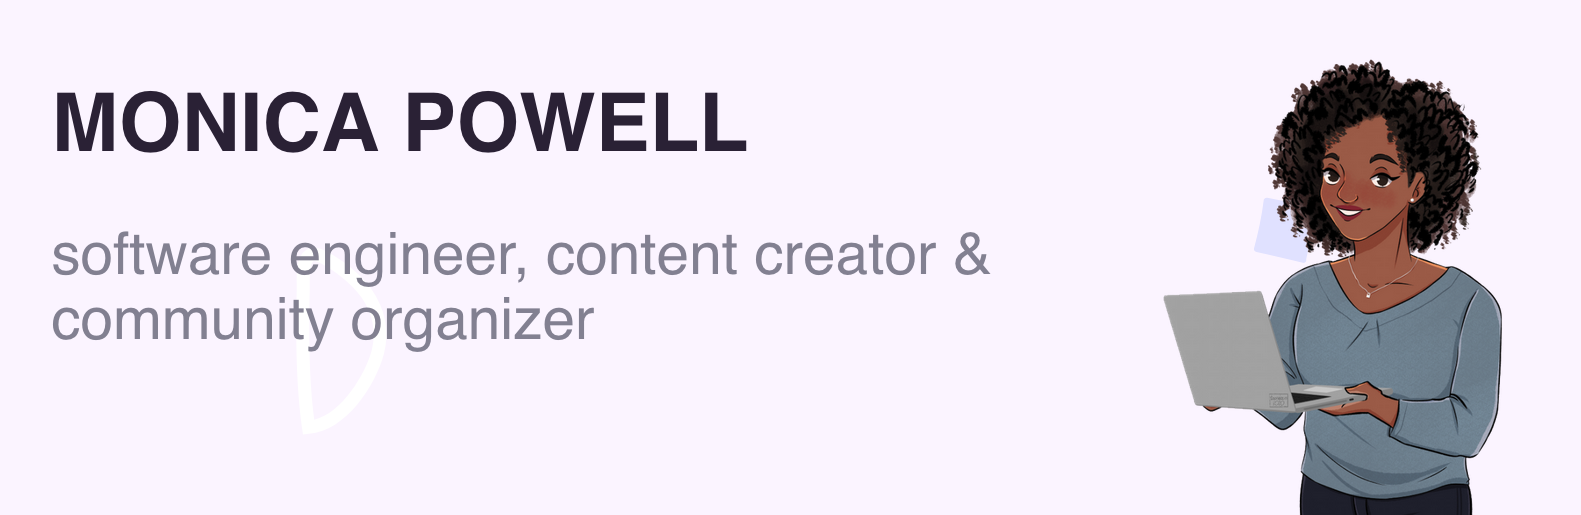 banner that says Monica Powell - software engineer, content creator and community organizer alongside a cartoon illustration of Monica